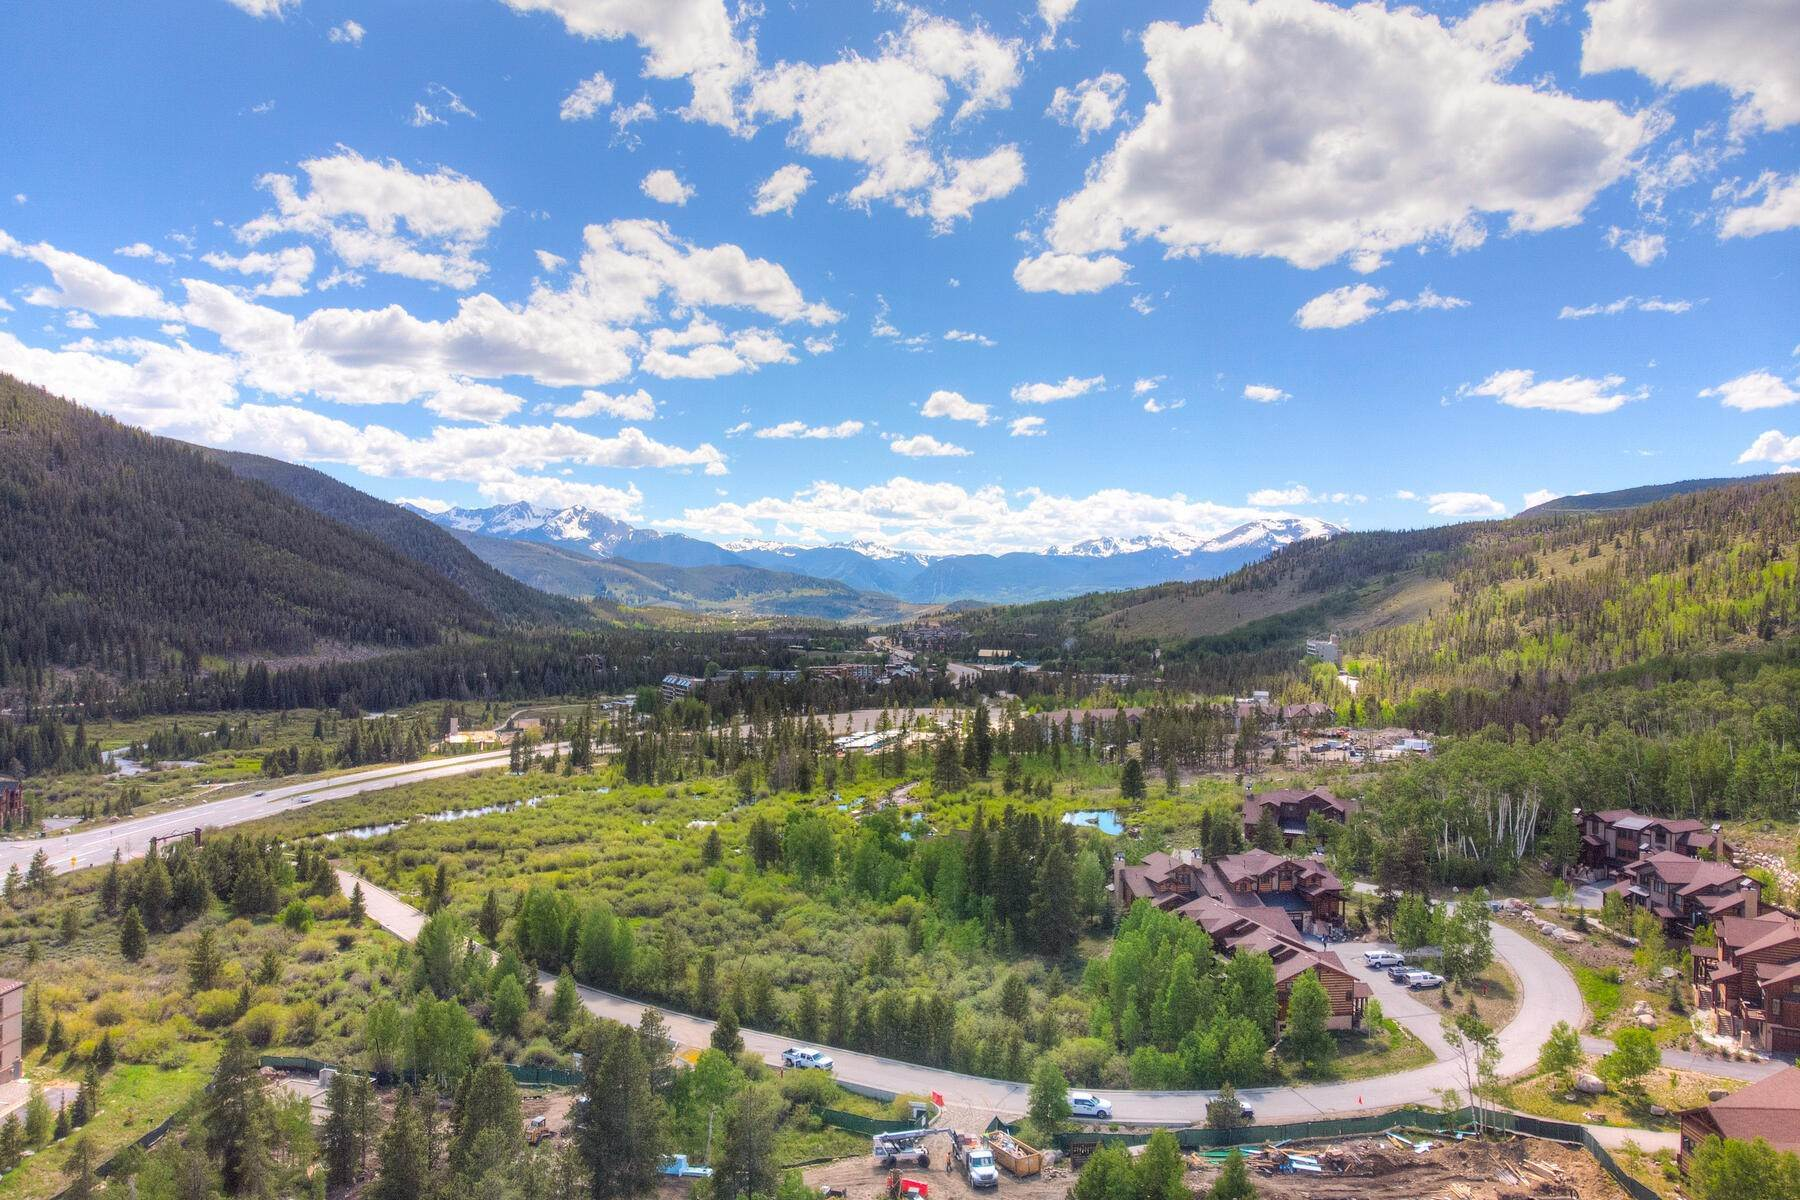 Duplex Homes for Sale at Sanctuary at Keystone 164 Caravelle Drive Keystone, Colorado 80435 United States